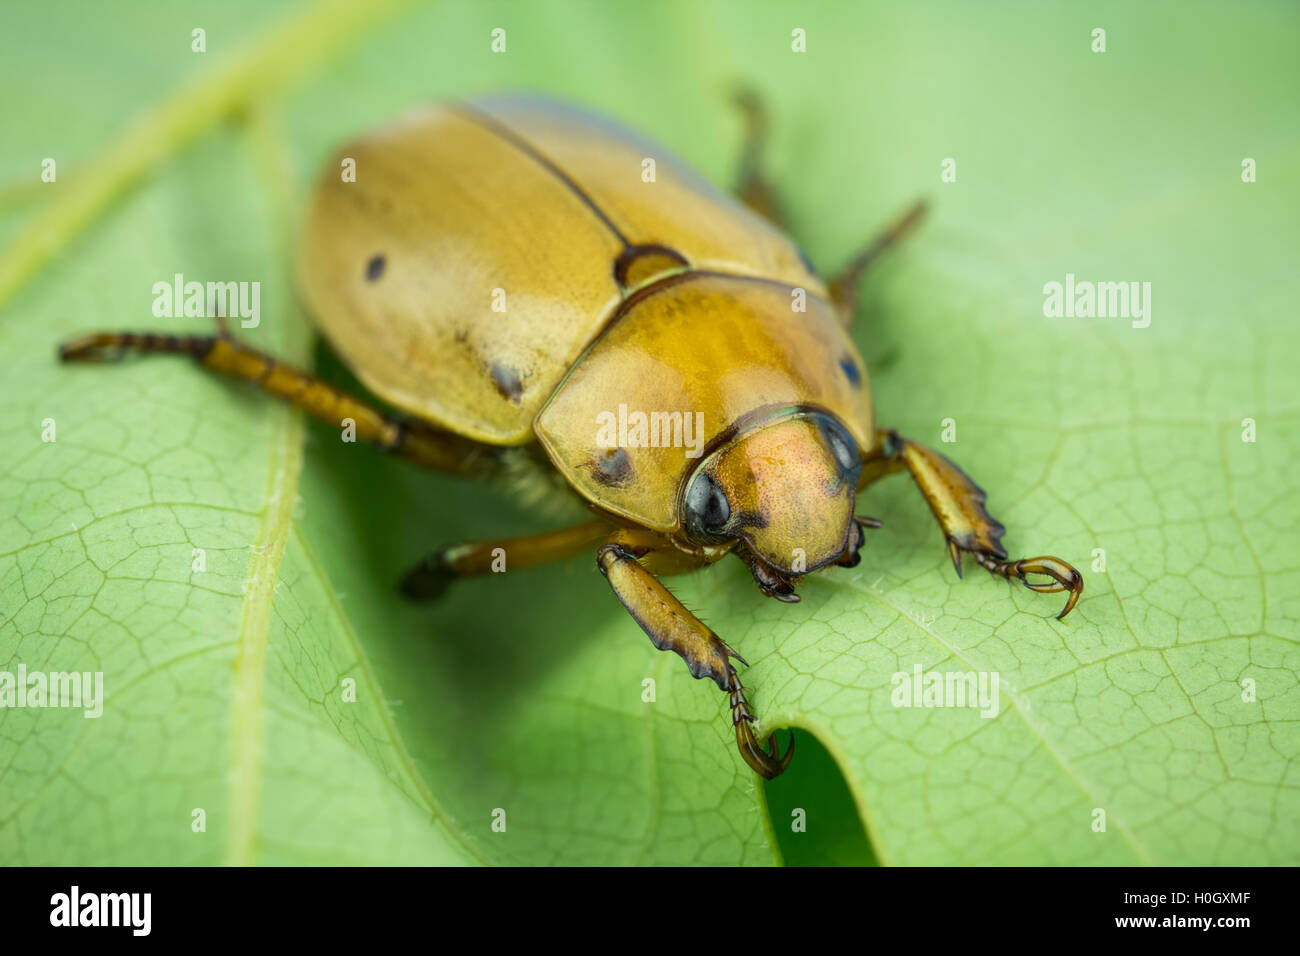 Macro of grapevine scarab beetle, on leaf. Tarsal claws on forelegs. Life as an insect can be hard - note the damaged - Stock Image